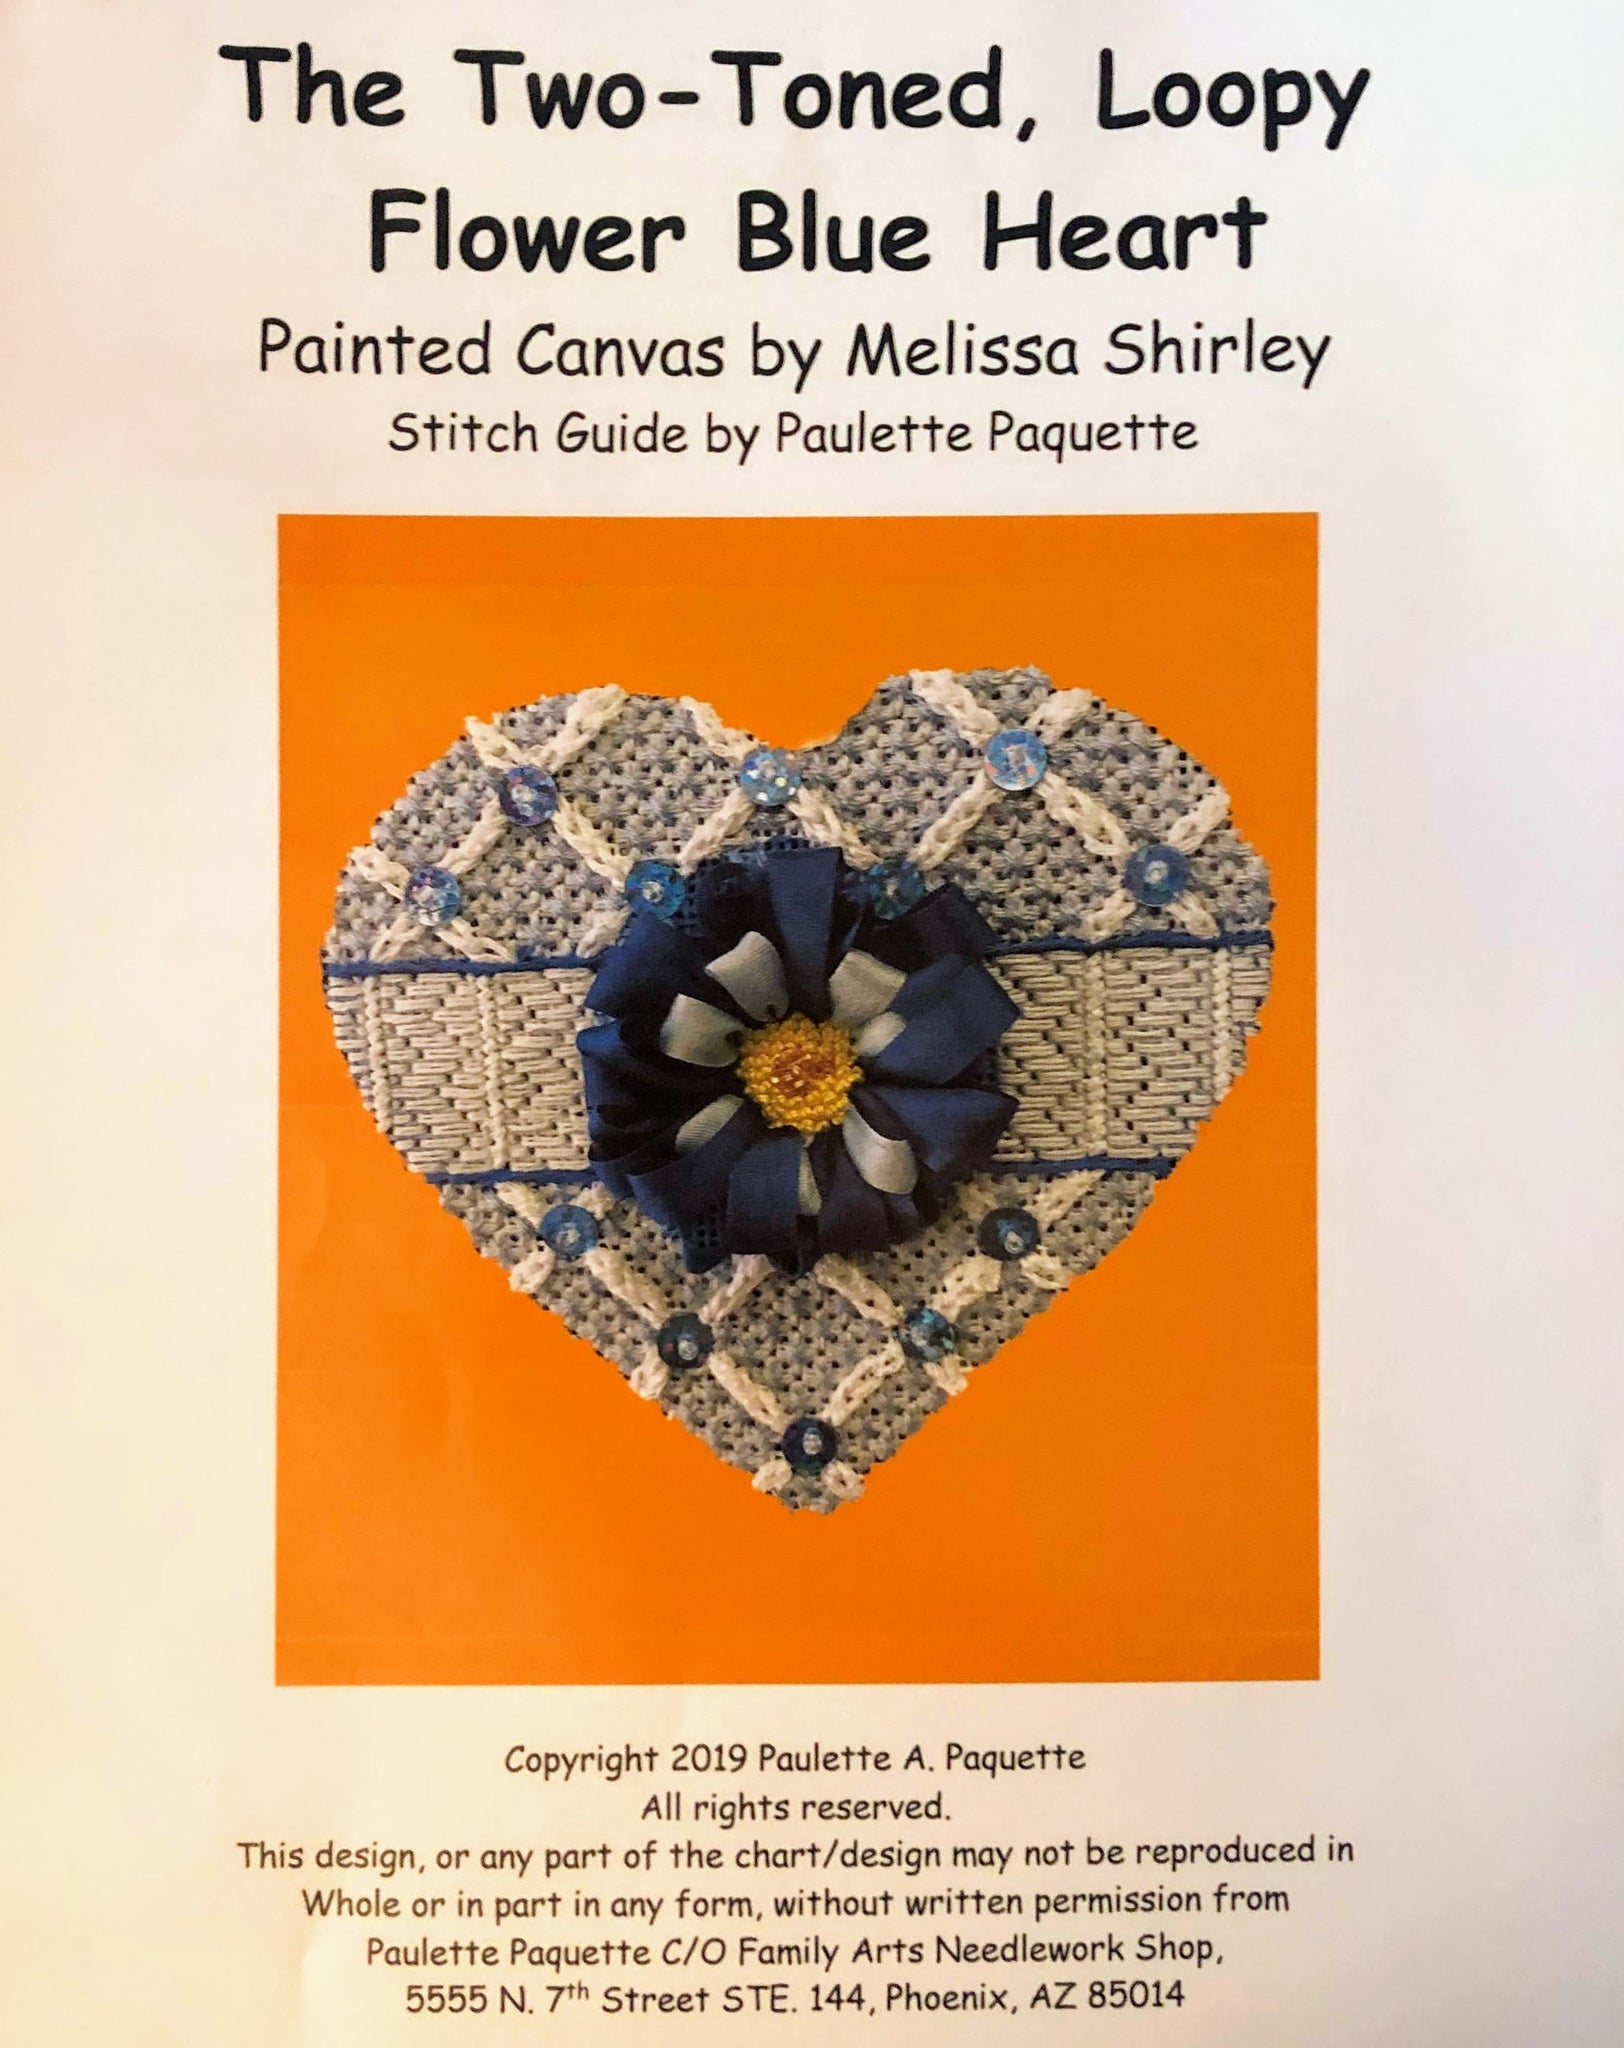 The Two-Toned, Loopy Flower Blue Heart - Canvas and Stitch Guide